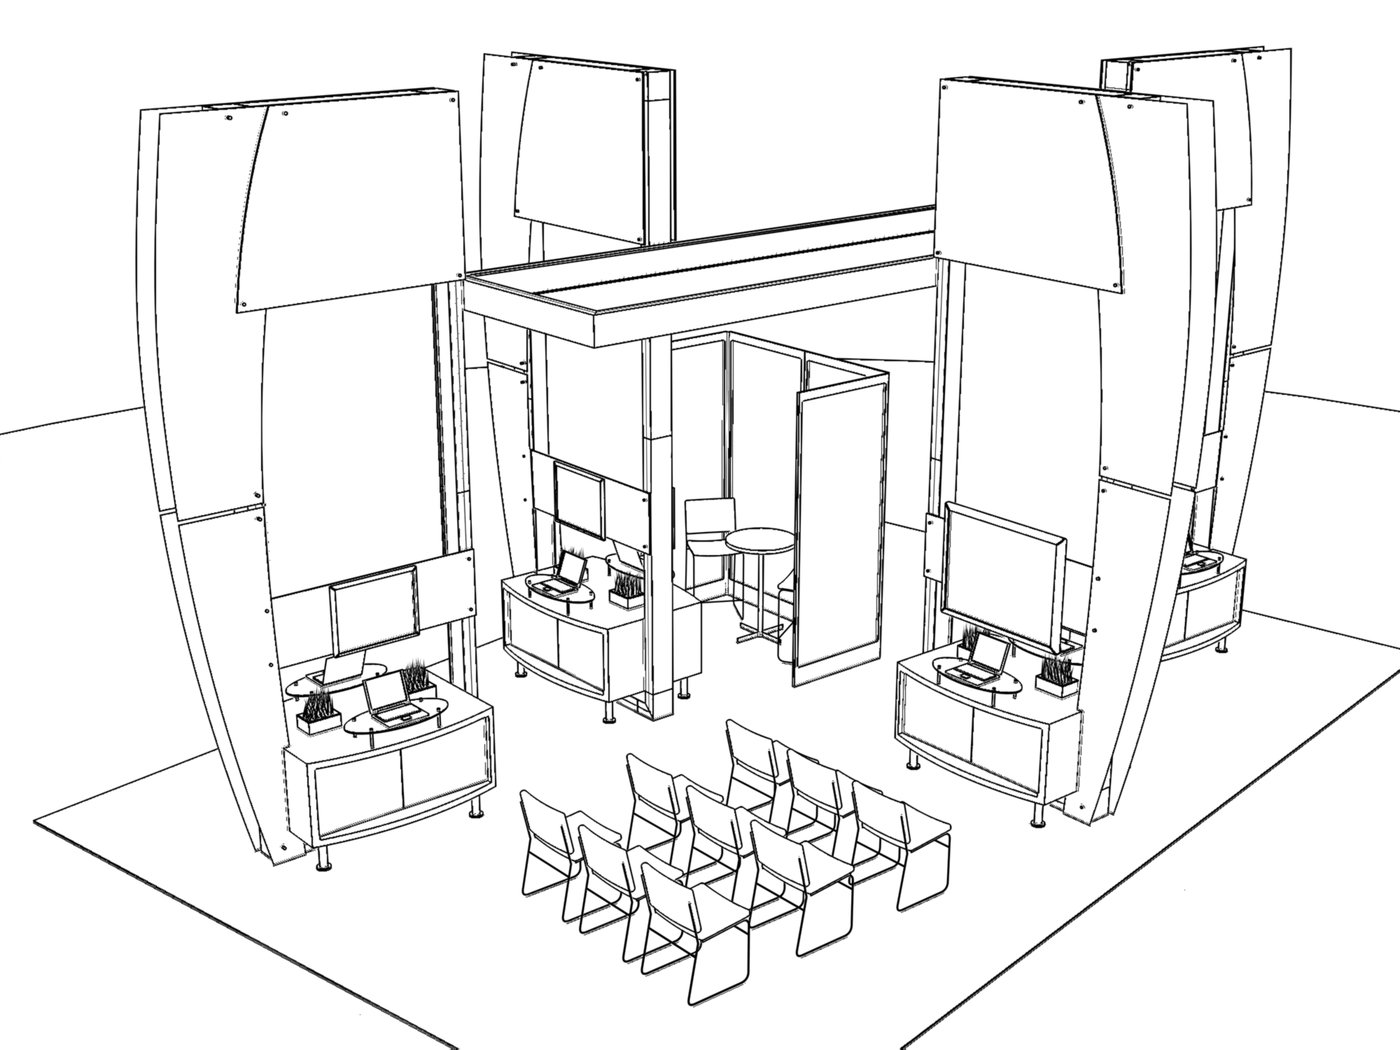 technical drawings by mark salyer at coroflot com